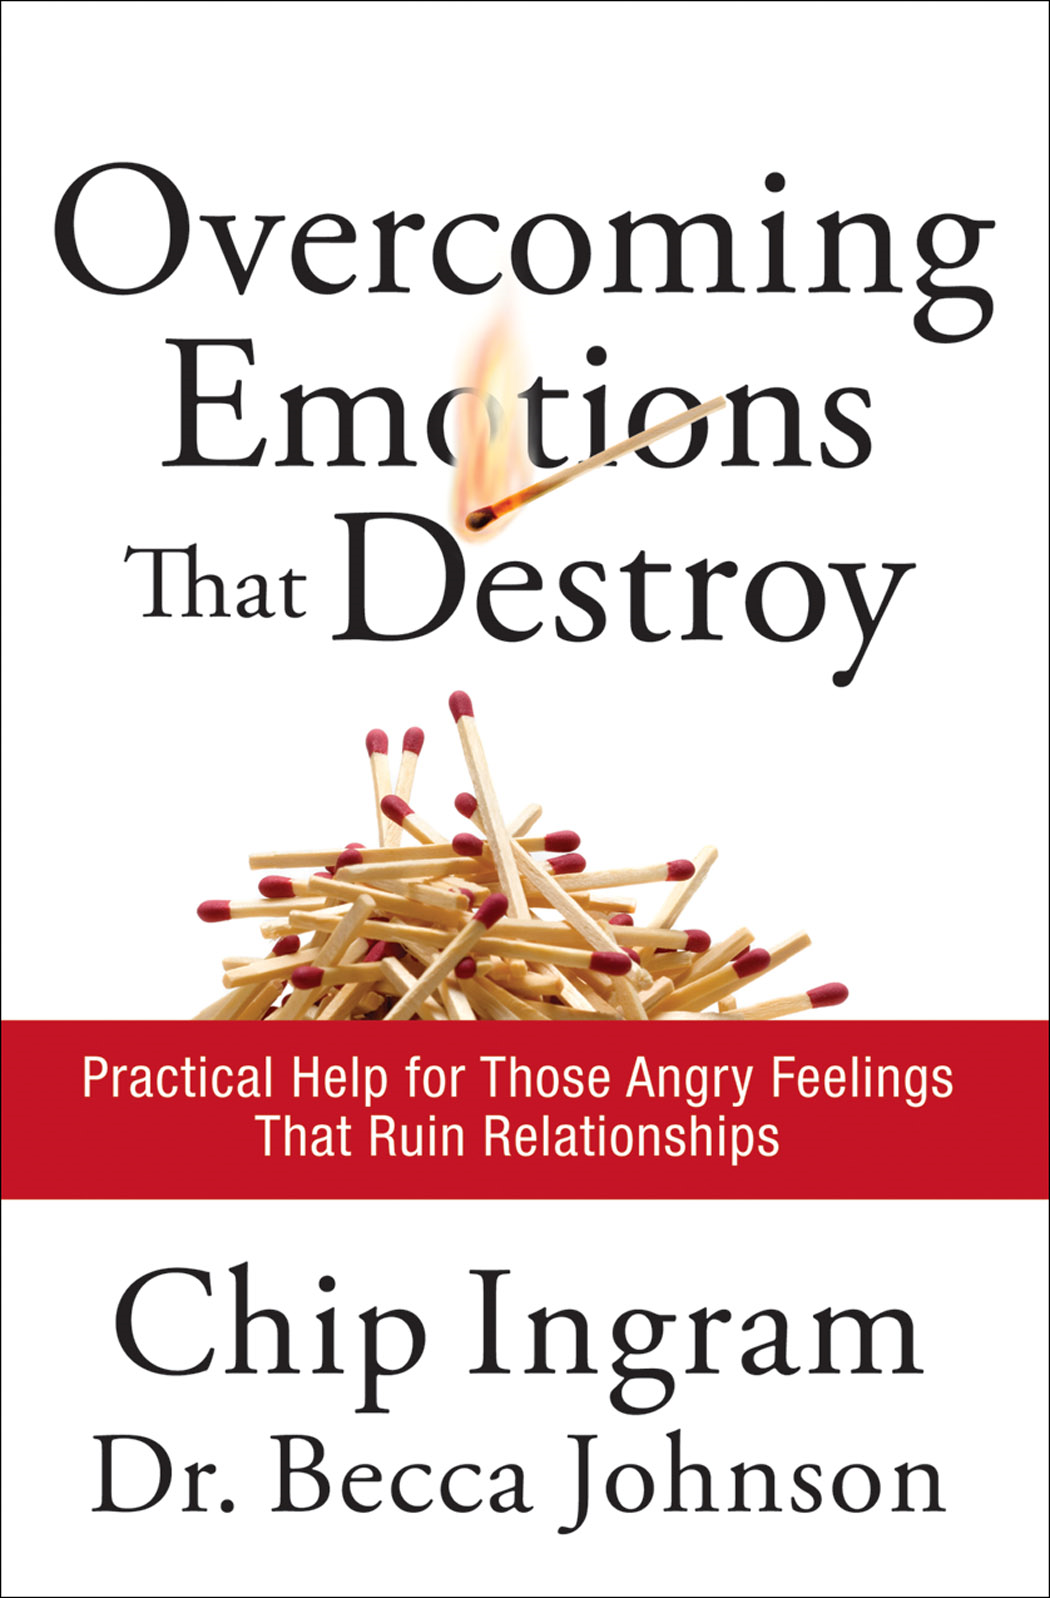 Overcoming Emotions that Destroy By: Becca Johnson,Chip Ingram